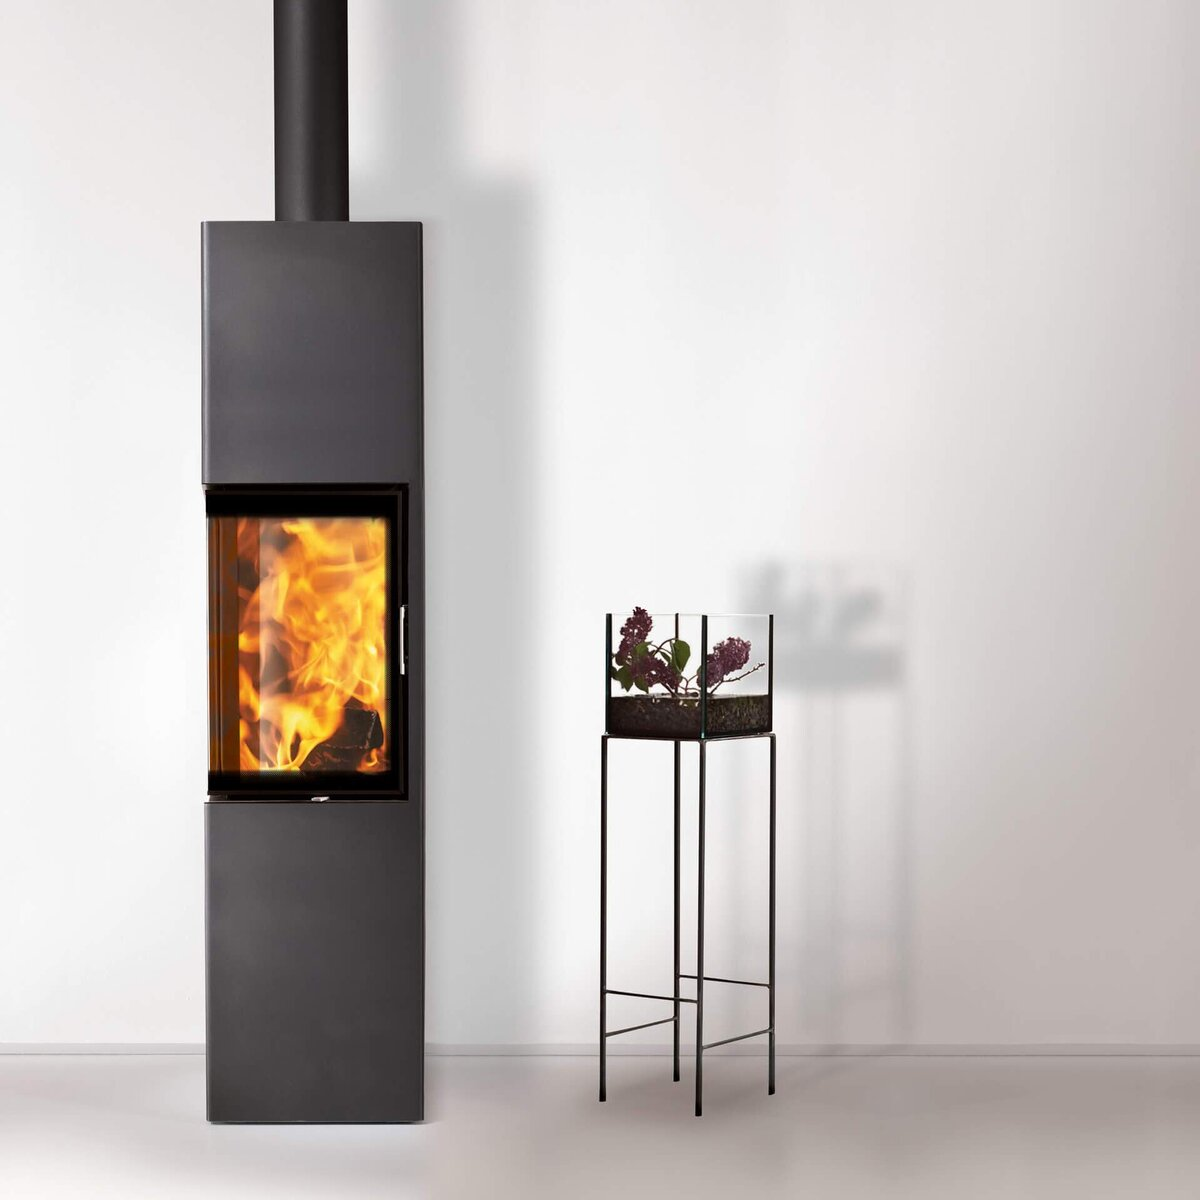 kaminofen austroflamm slim 2 0 4 kw online kaufen feuer fuchs von austroflamm. Black Bedroom Furniture Sets. Home Design Ideas